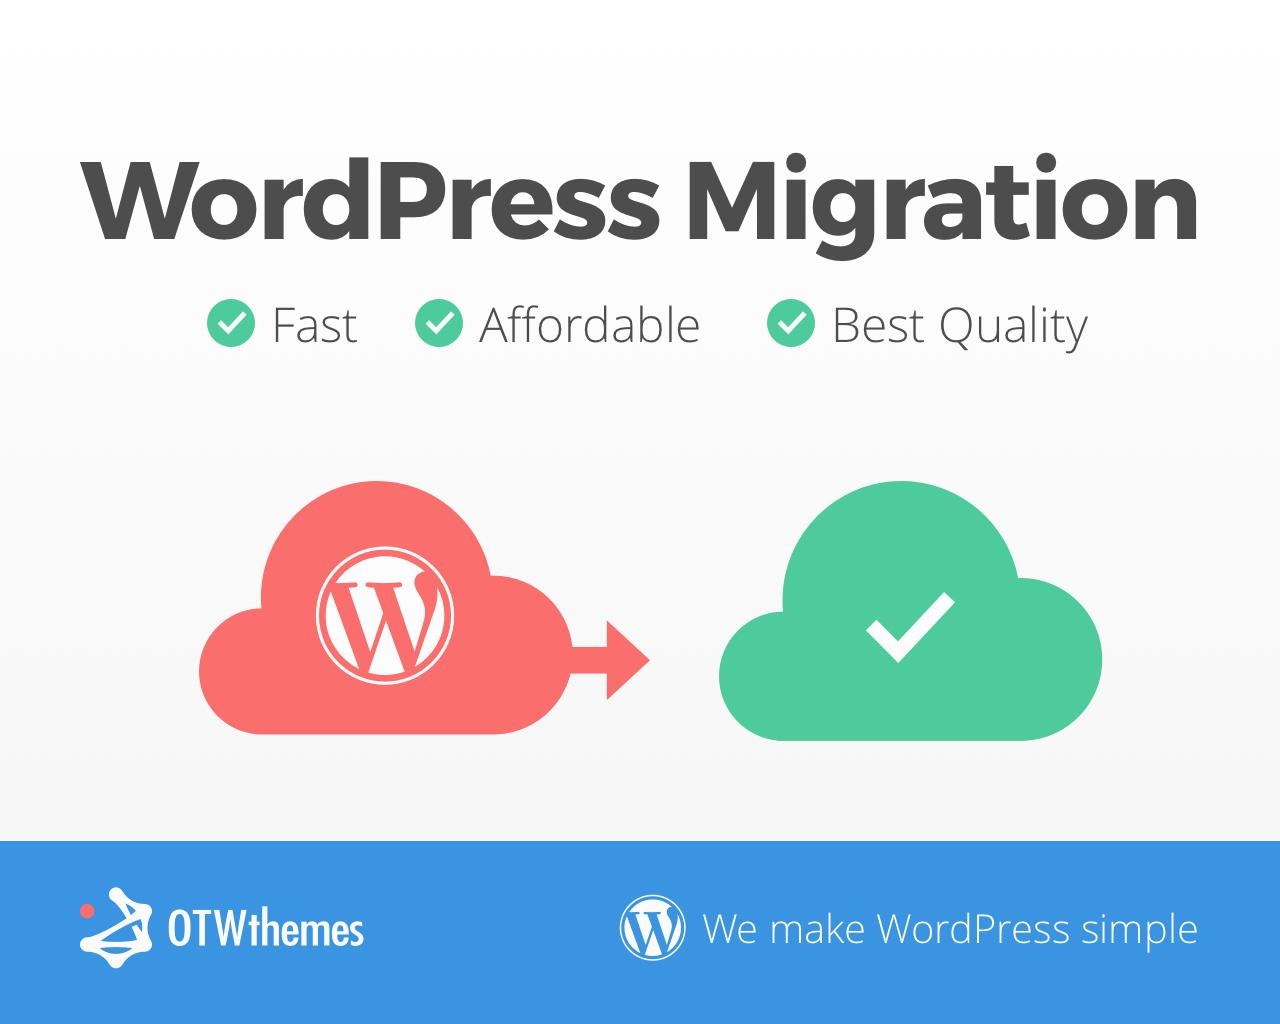 WordPress Migration Complete - Move Site, Clone, Transfer, Change Hosting, Change Server by OTWthemes - 104571